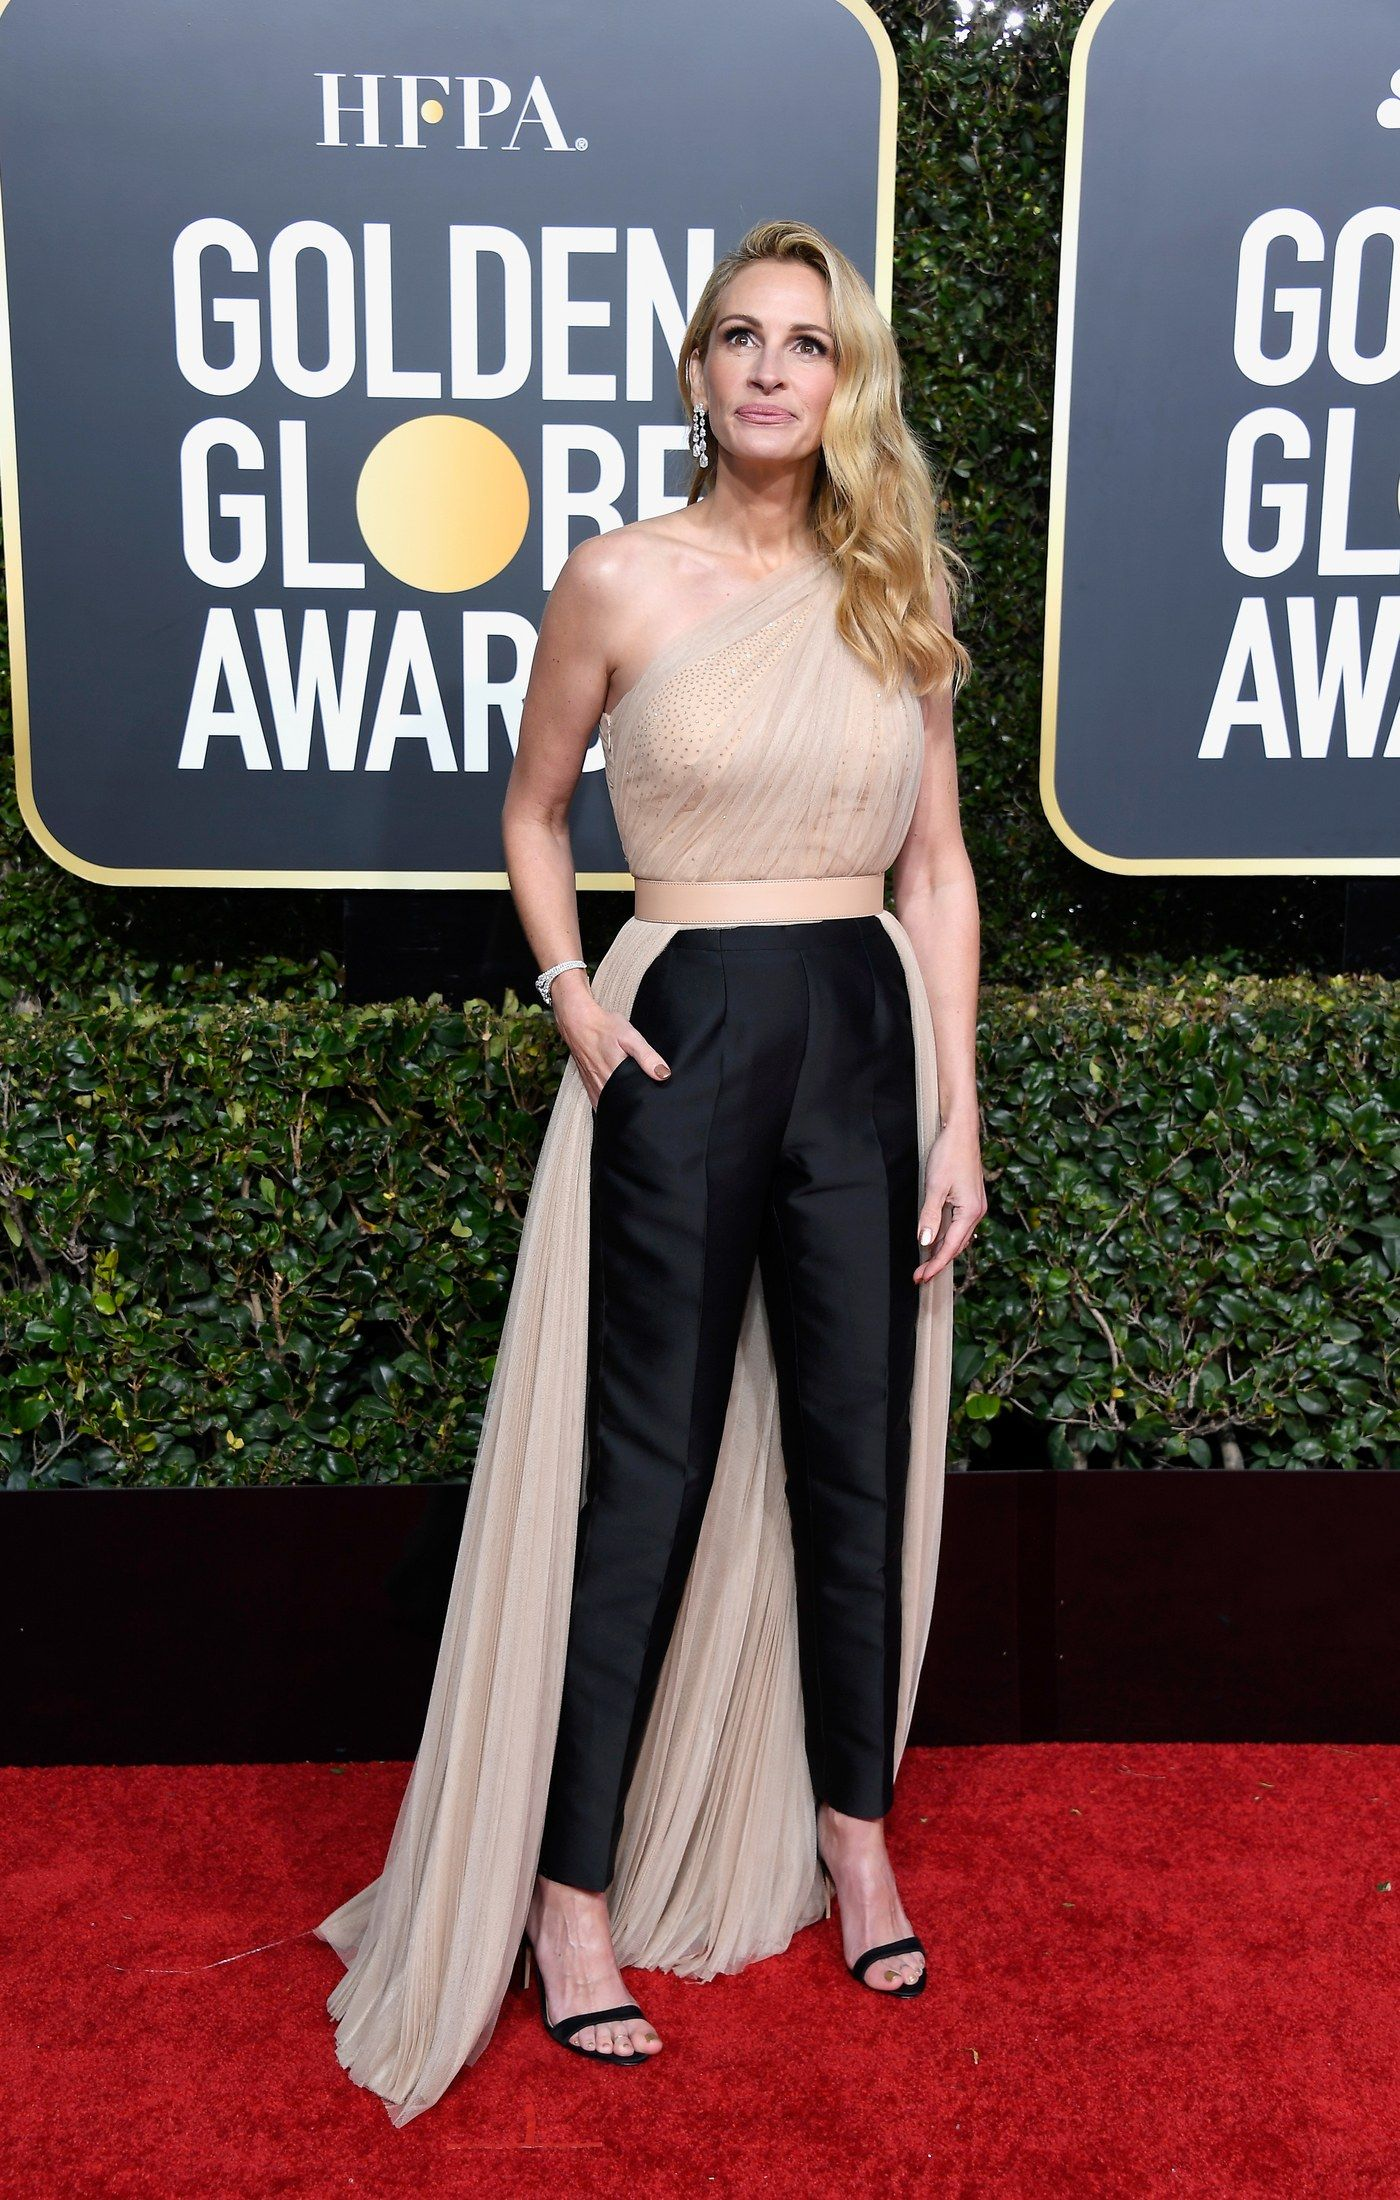 At 60 Jamie Lee Curtis Turns Shocking White Everything Into The Ultimate Red Carpet Move Red Carpet Outfits Golden Globes Red Carpet Celeb Dresses Gowns [ 2200 x 1400 Pixel ]